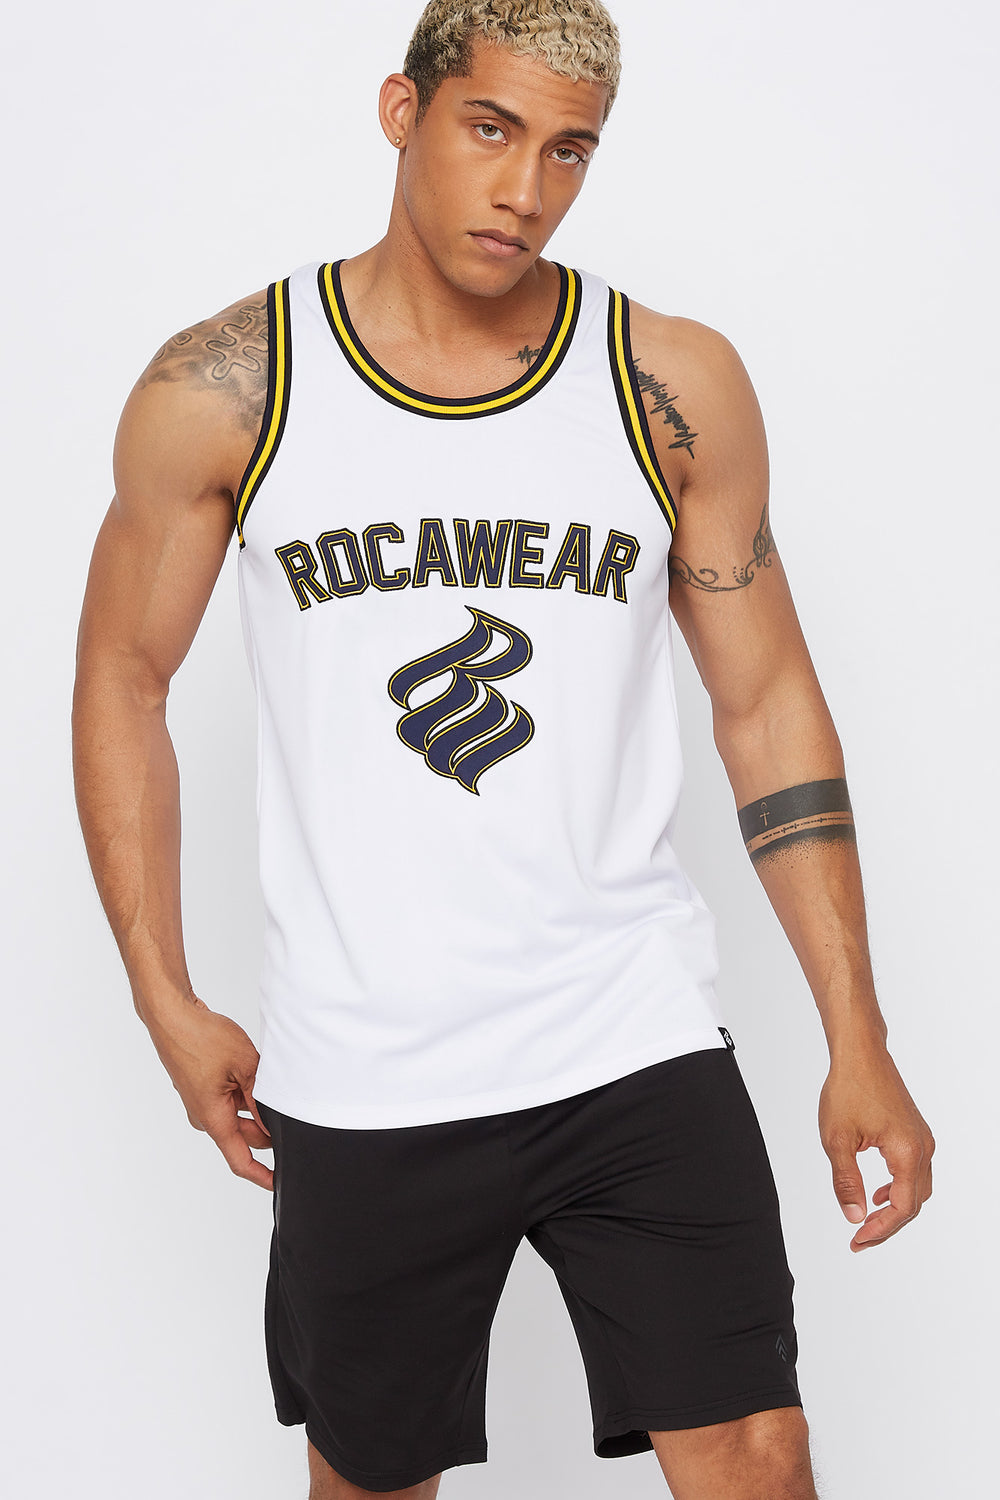 Rocawear Basketball Jersey White